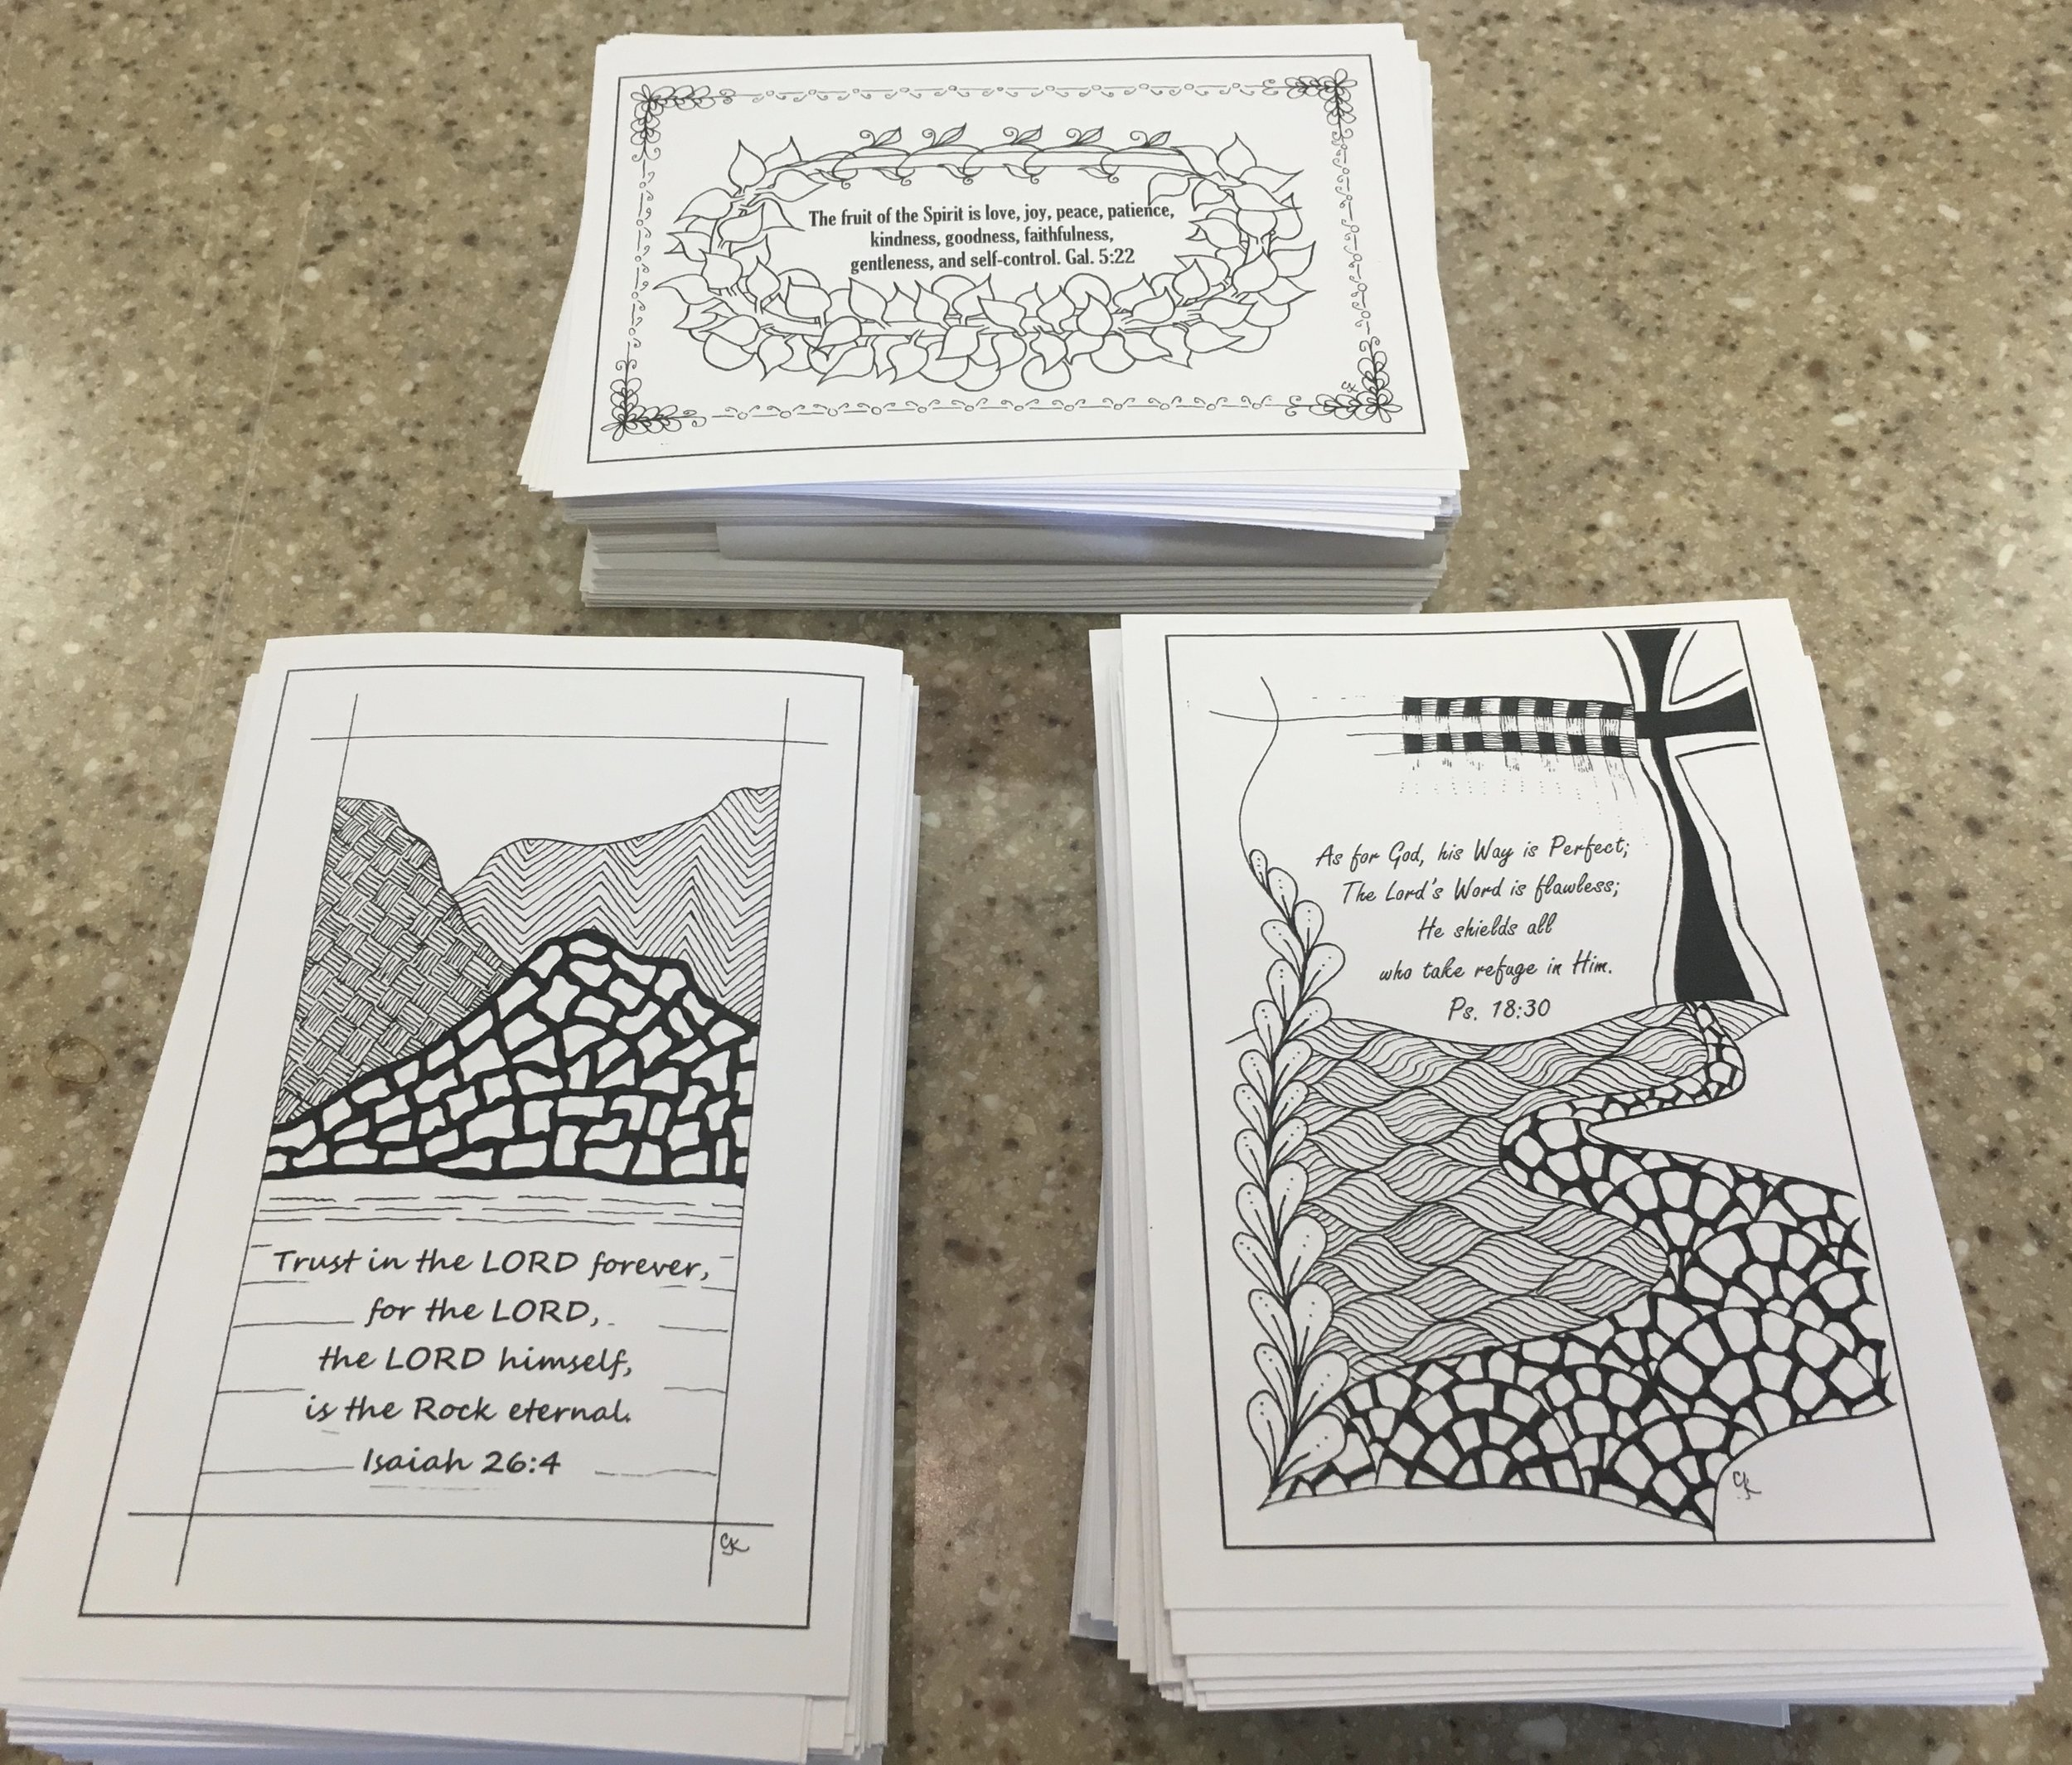 Here are some of the Versicle prayer cards created by Visual Faith Coach Carla Kramer and distributed to those attending.